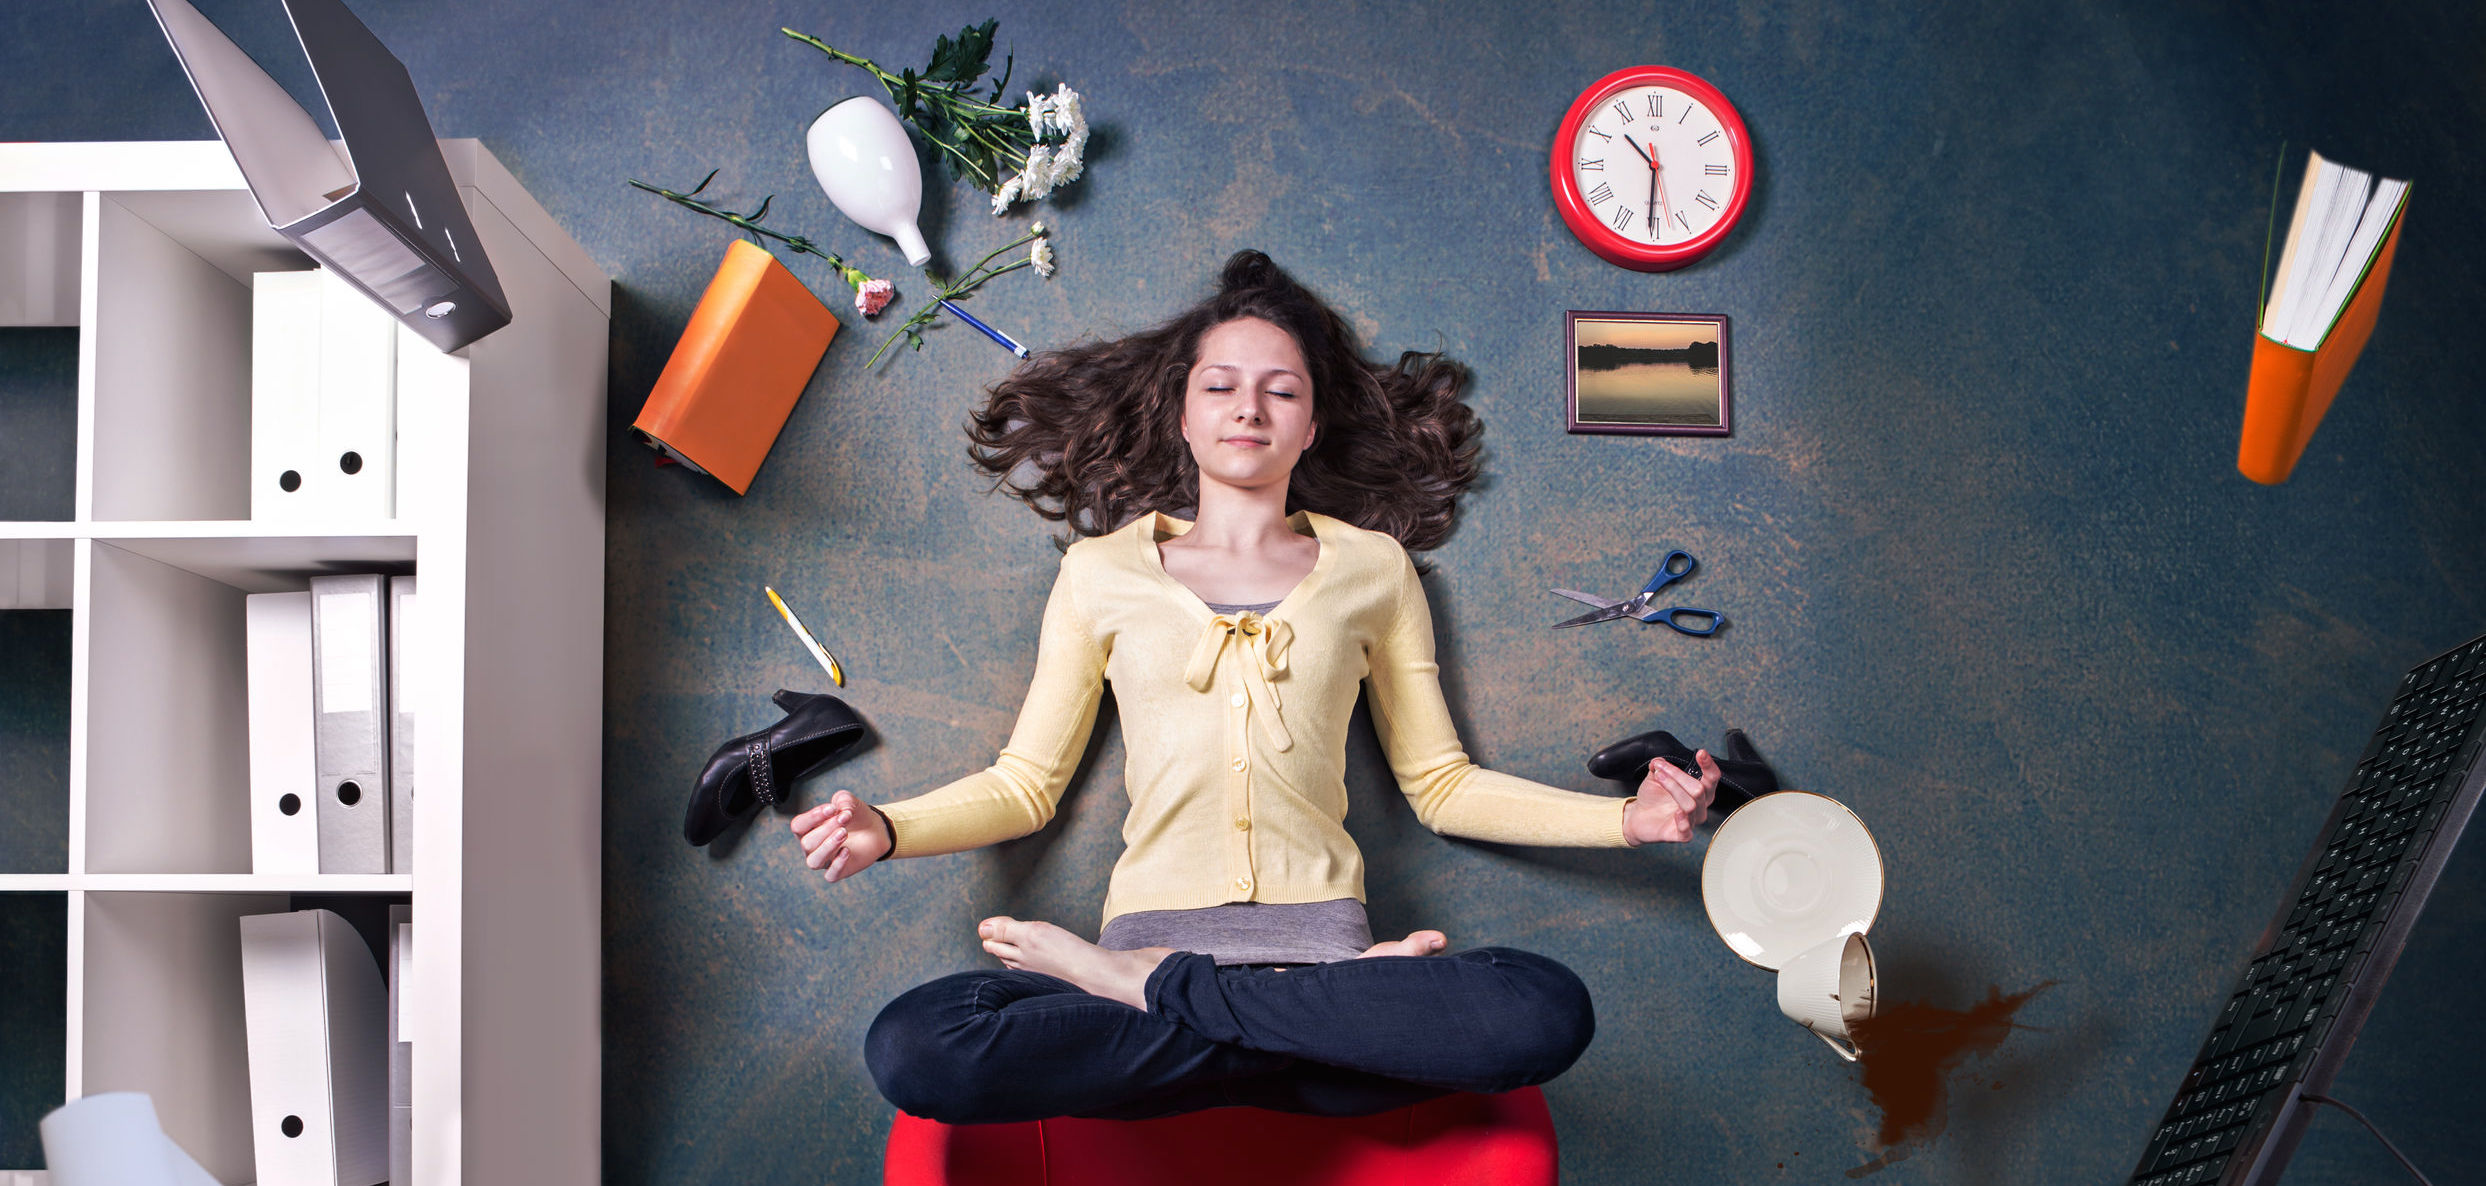 Woman practicing mindful meditation in chaotic environment